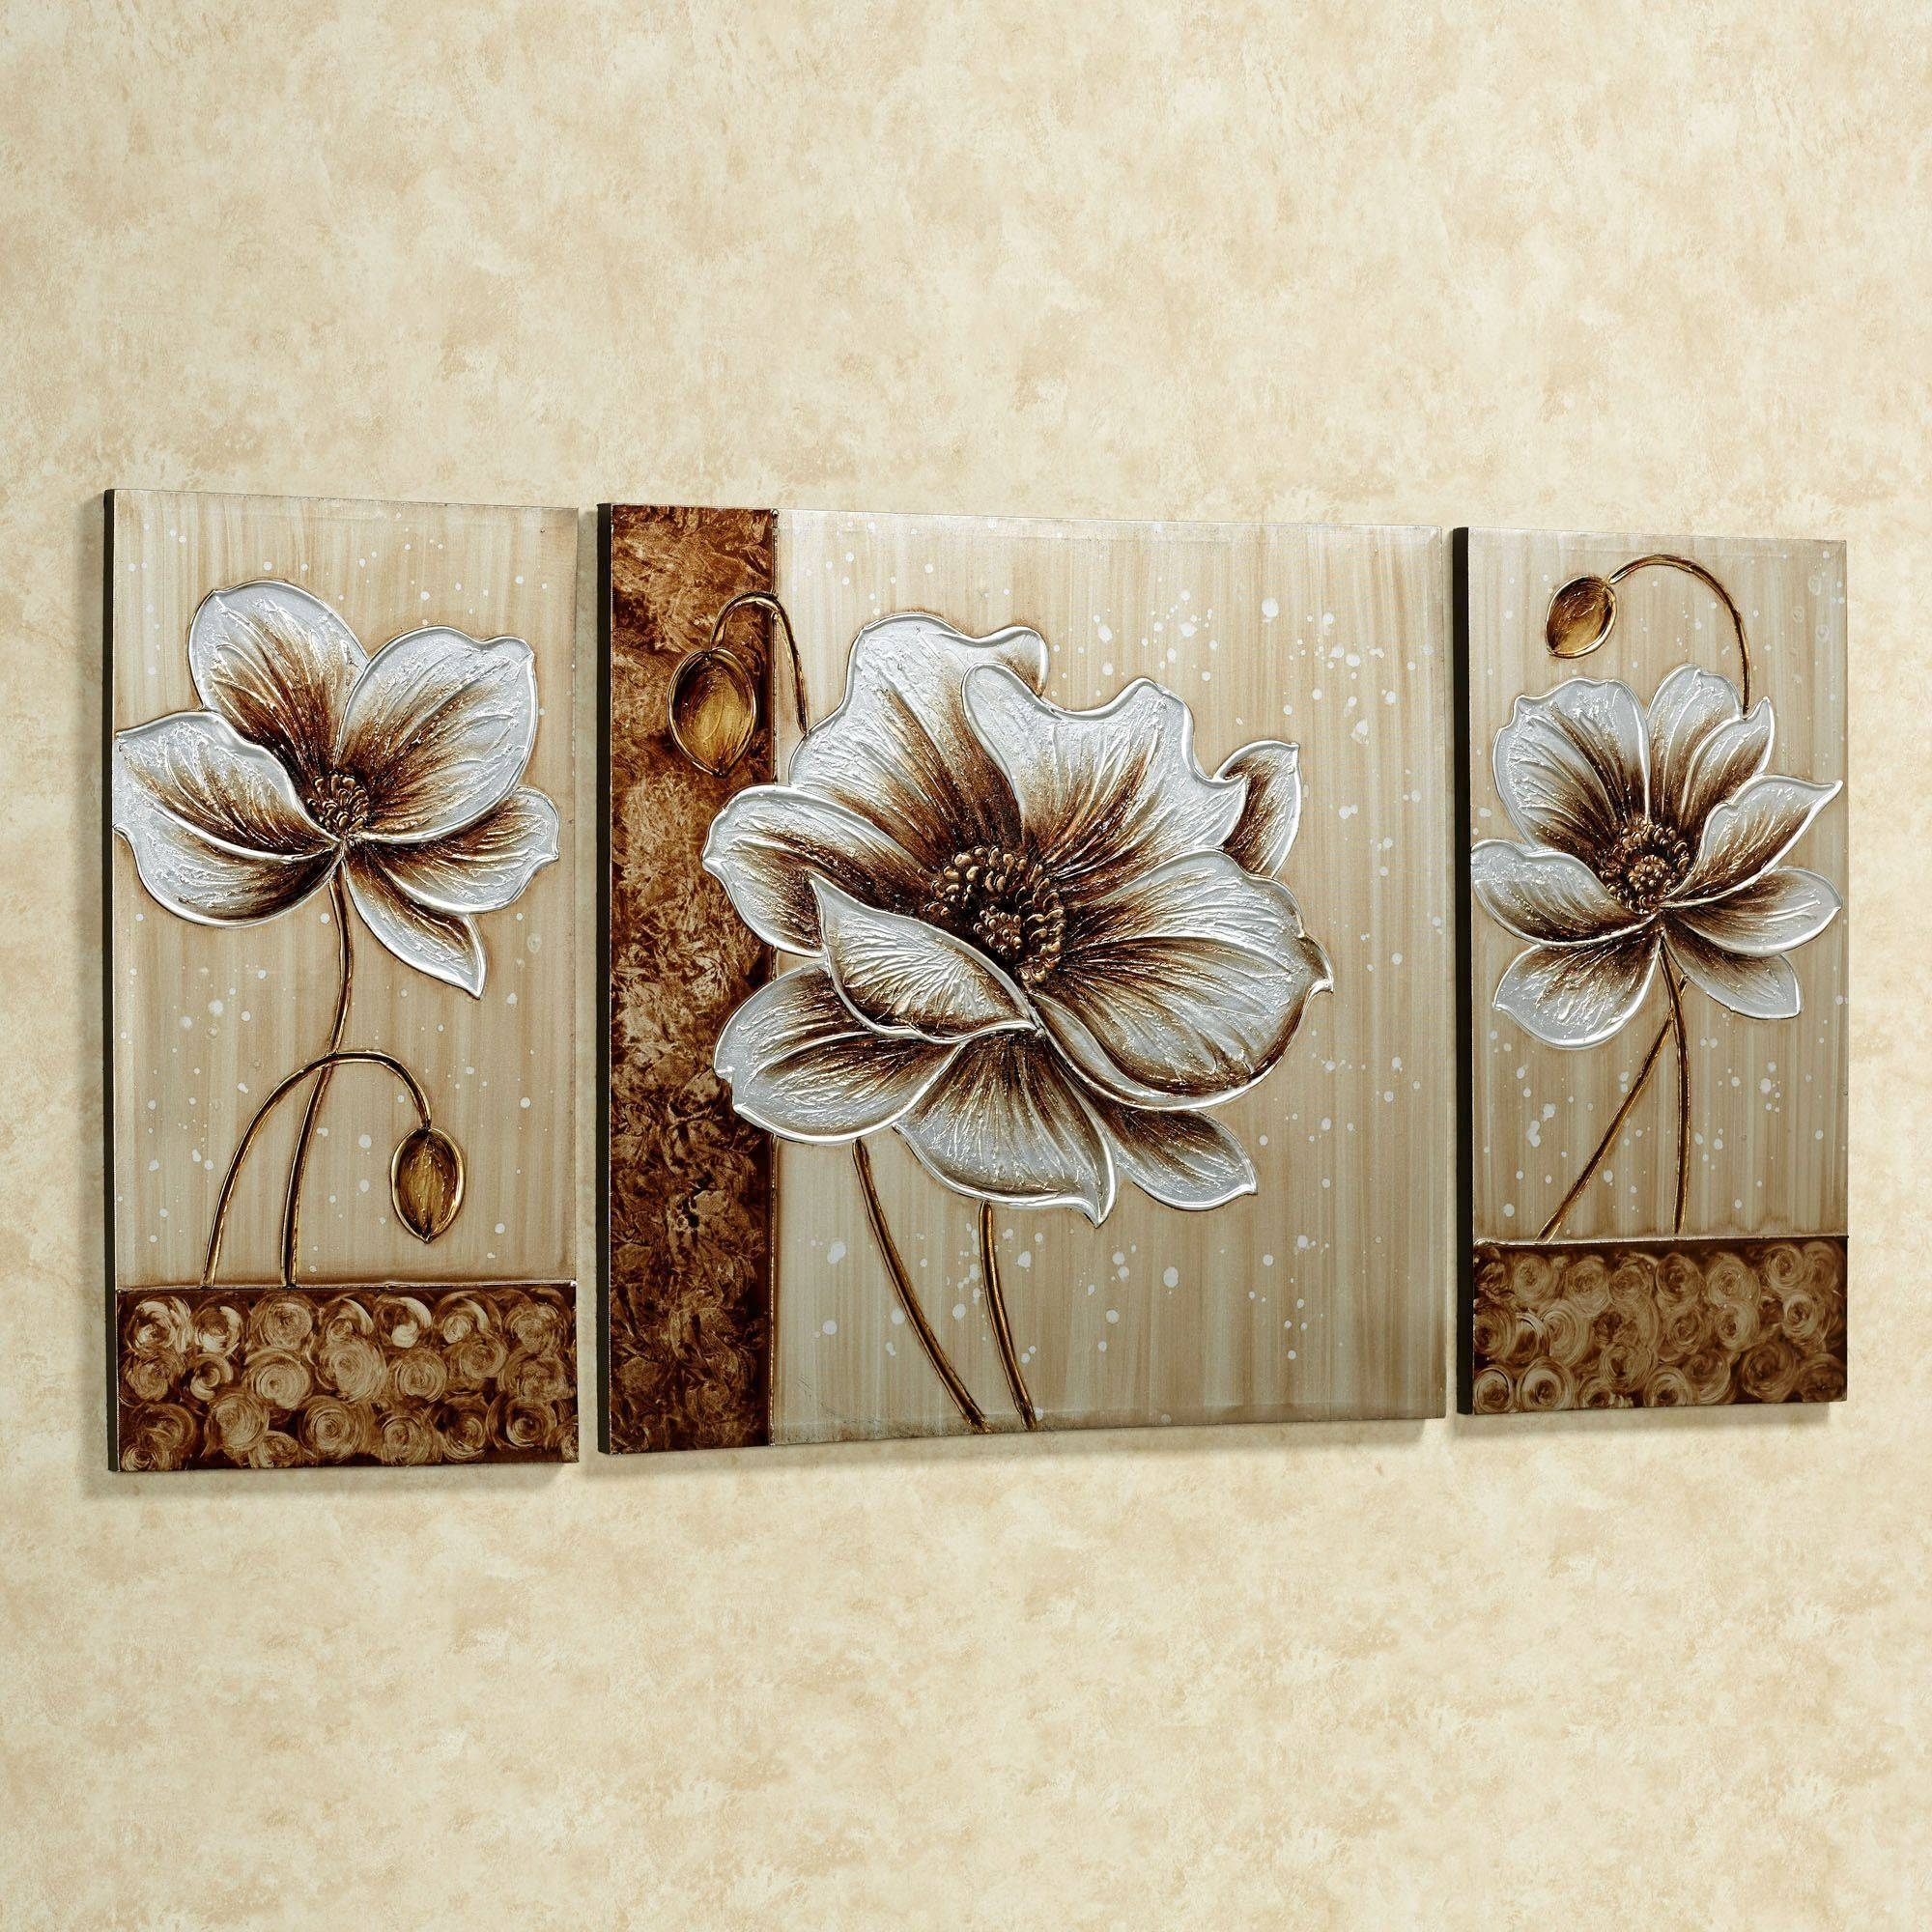 Canvas Flower Wall Art Within Best And Newest Multiple Piece Canvas Wall Art (View 8 of 25)